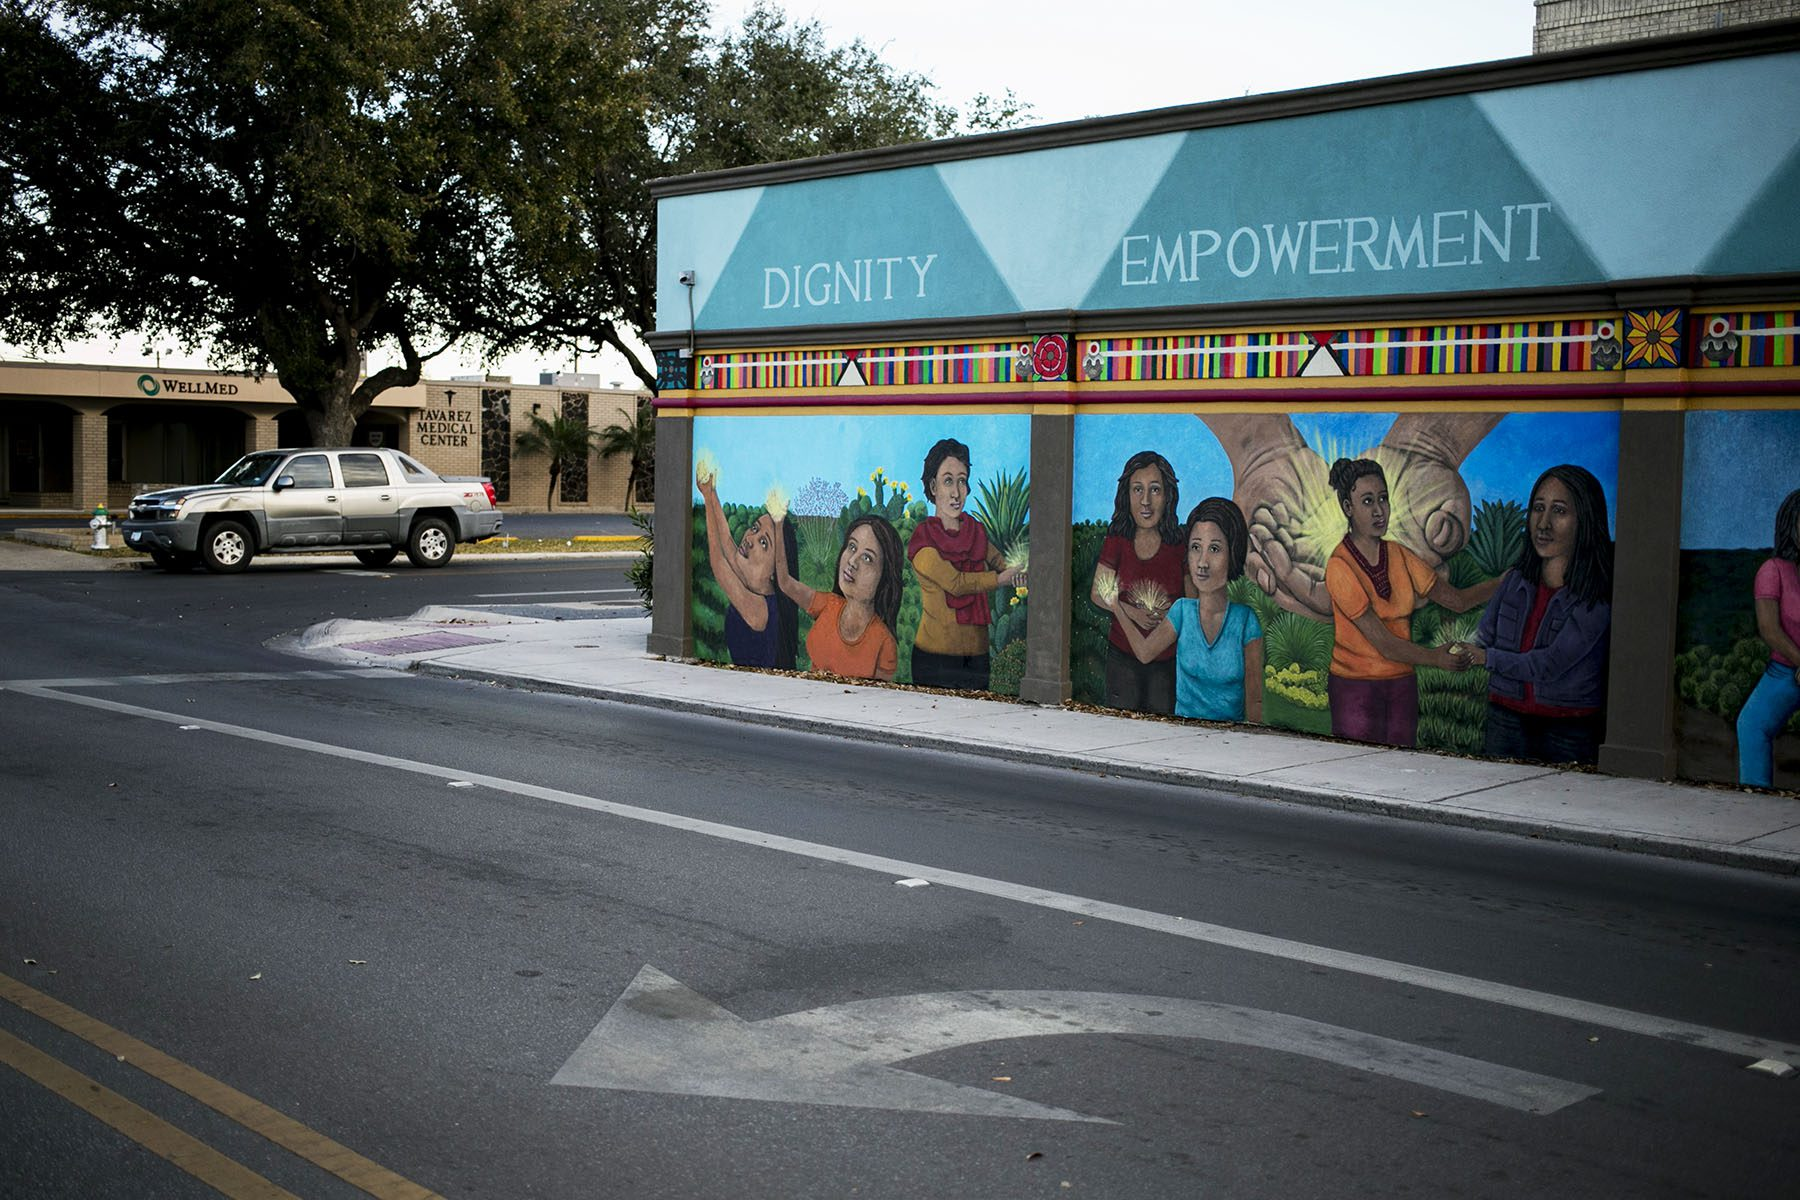 A mural painted on the side of the clinic has the words 'dignity,' 'empowerment,' 'compassion,' and 'justice' accompanying a painted scene where women hold hands and comfort each other.